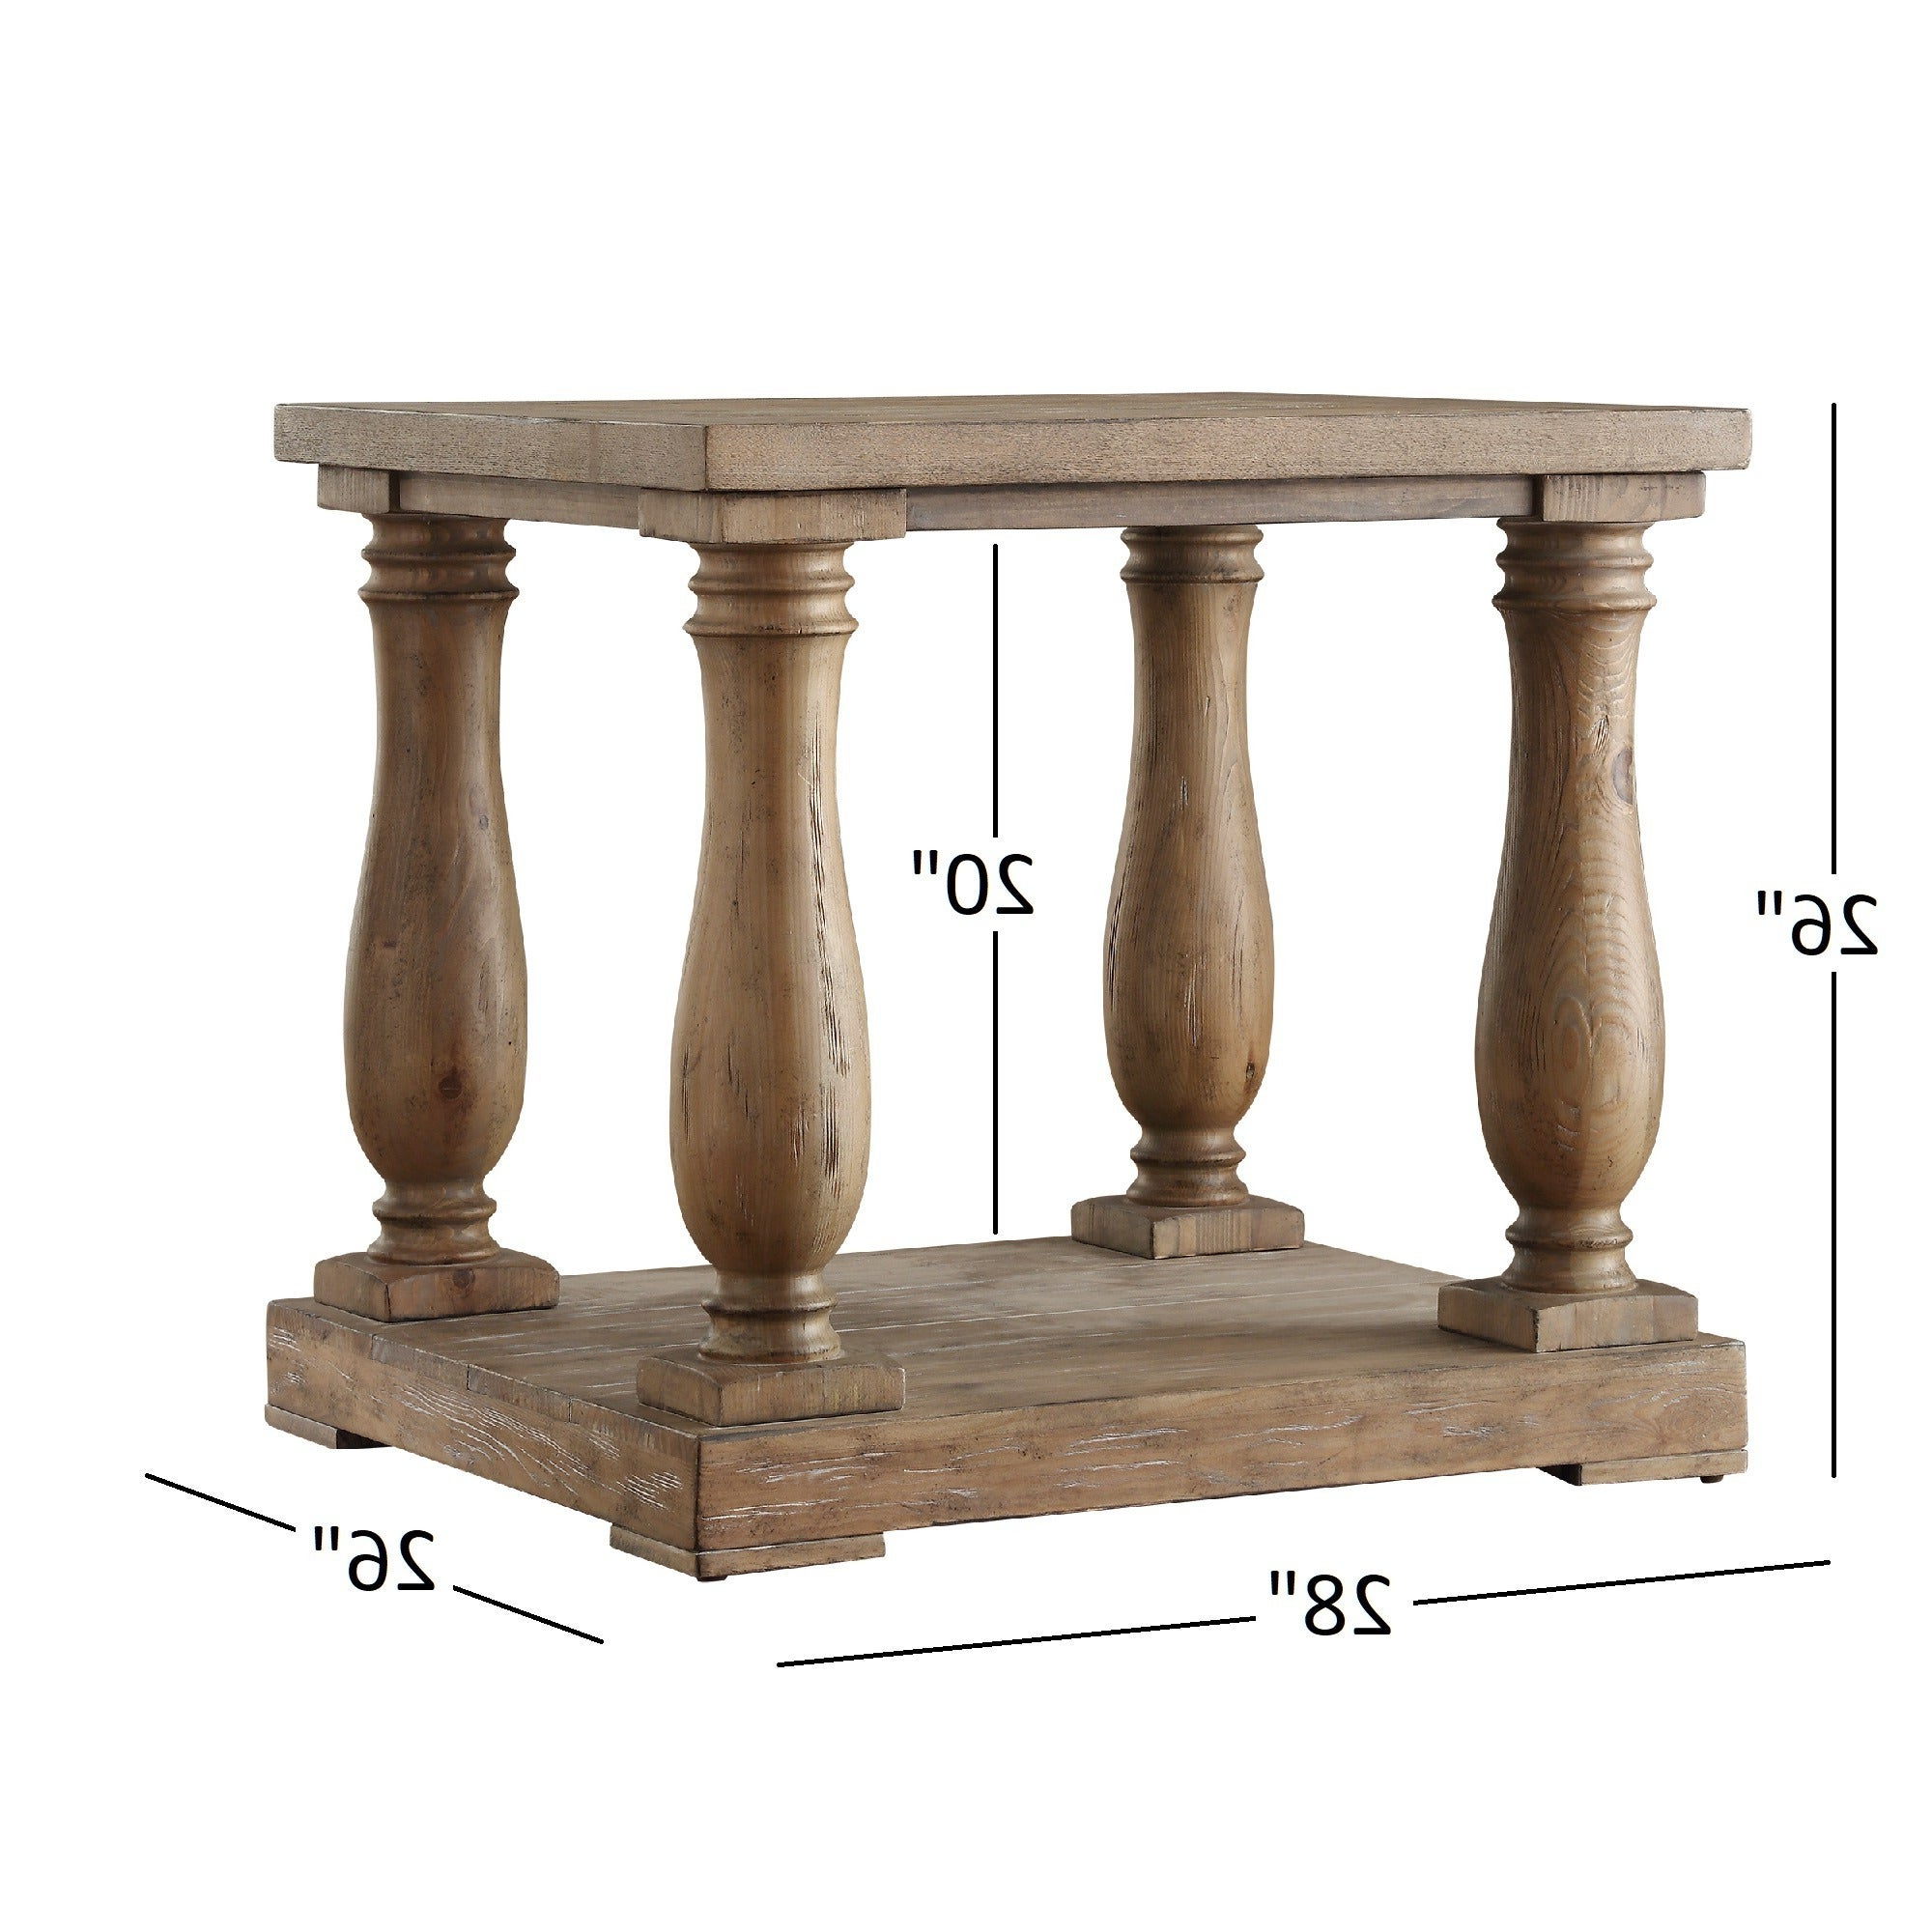 Edmaire Rustic Pine Baluster 3 Piece Table Setinspire Q Artisan With Regard To Widely Used Edmaire Rustic Pine Baluster Coffee Tables (View 5 of 20)